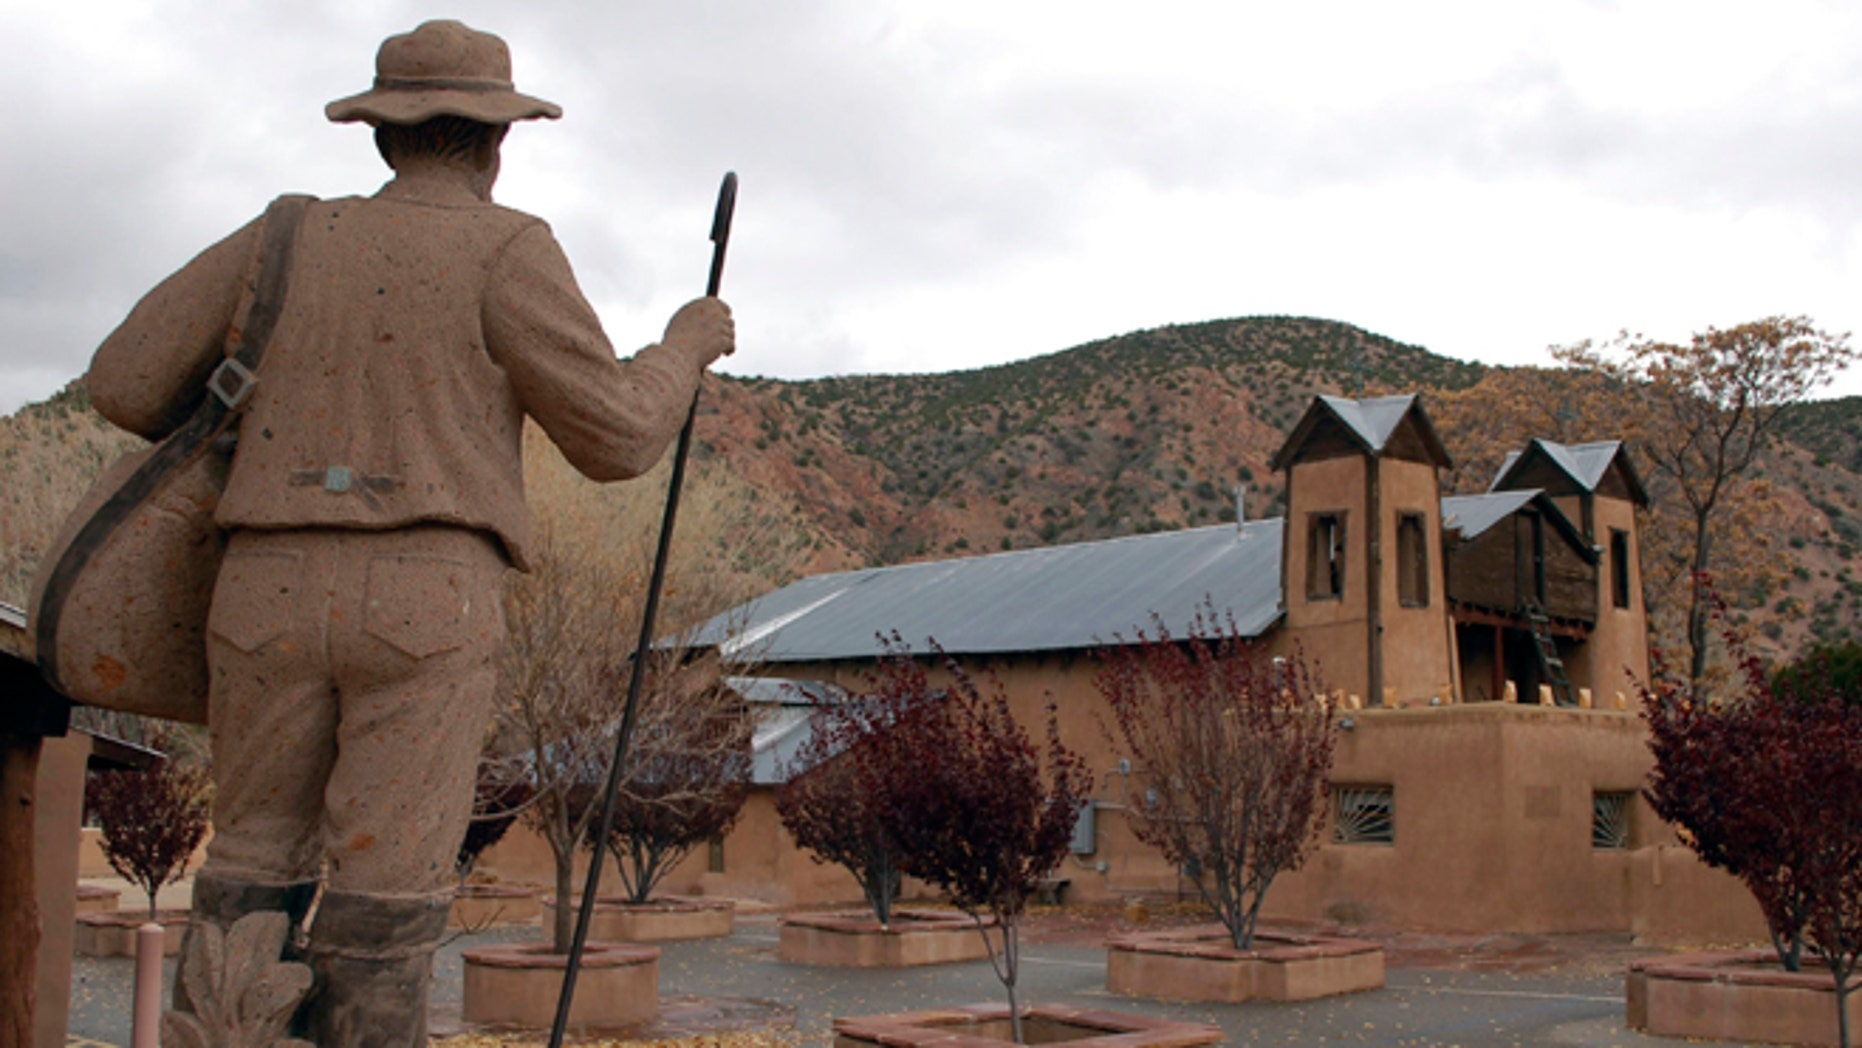 FILE- A Nov. 13, 2011, file photo shows El Santuario de Chimayo outside of Espanola, N.M.  The popular northern New Mexico Catholic shrine that attracts thousands each year is working to fight persistent vandals. A benefit concert fo by world-renowned cellist Michael Fitzpatrick is scheduled on July 19,2013 outside the Santuario. (AP Photo/Russell Contreras, File)